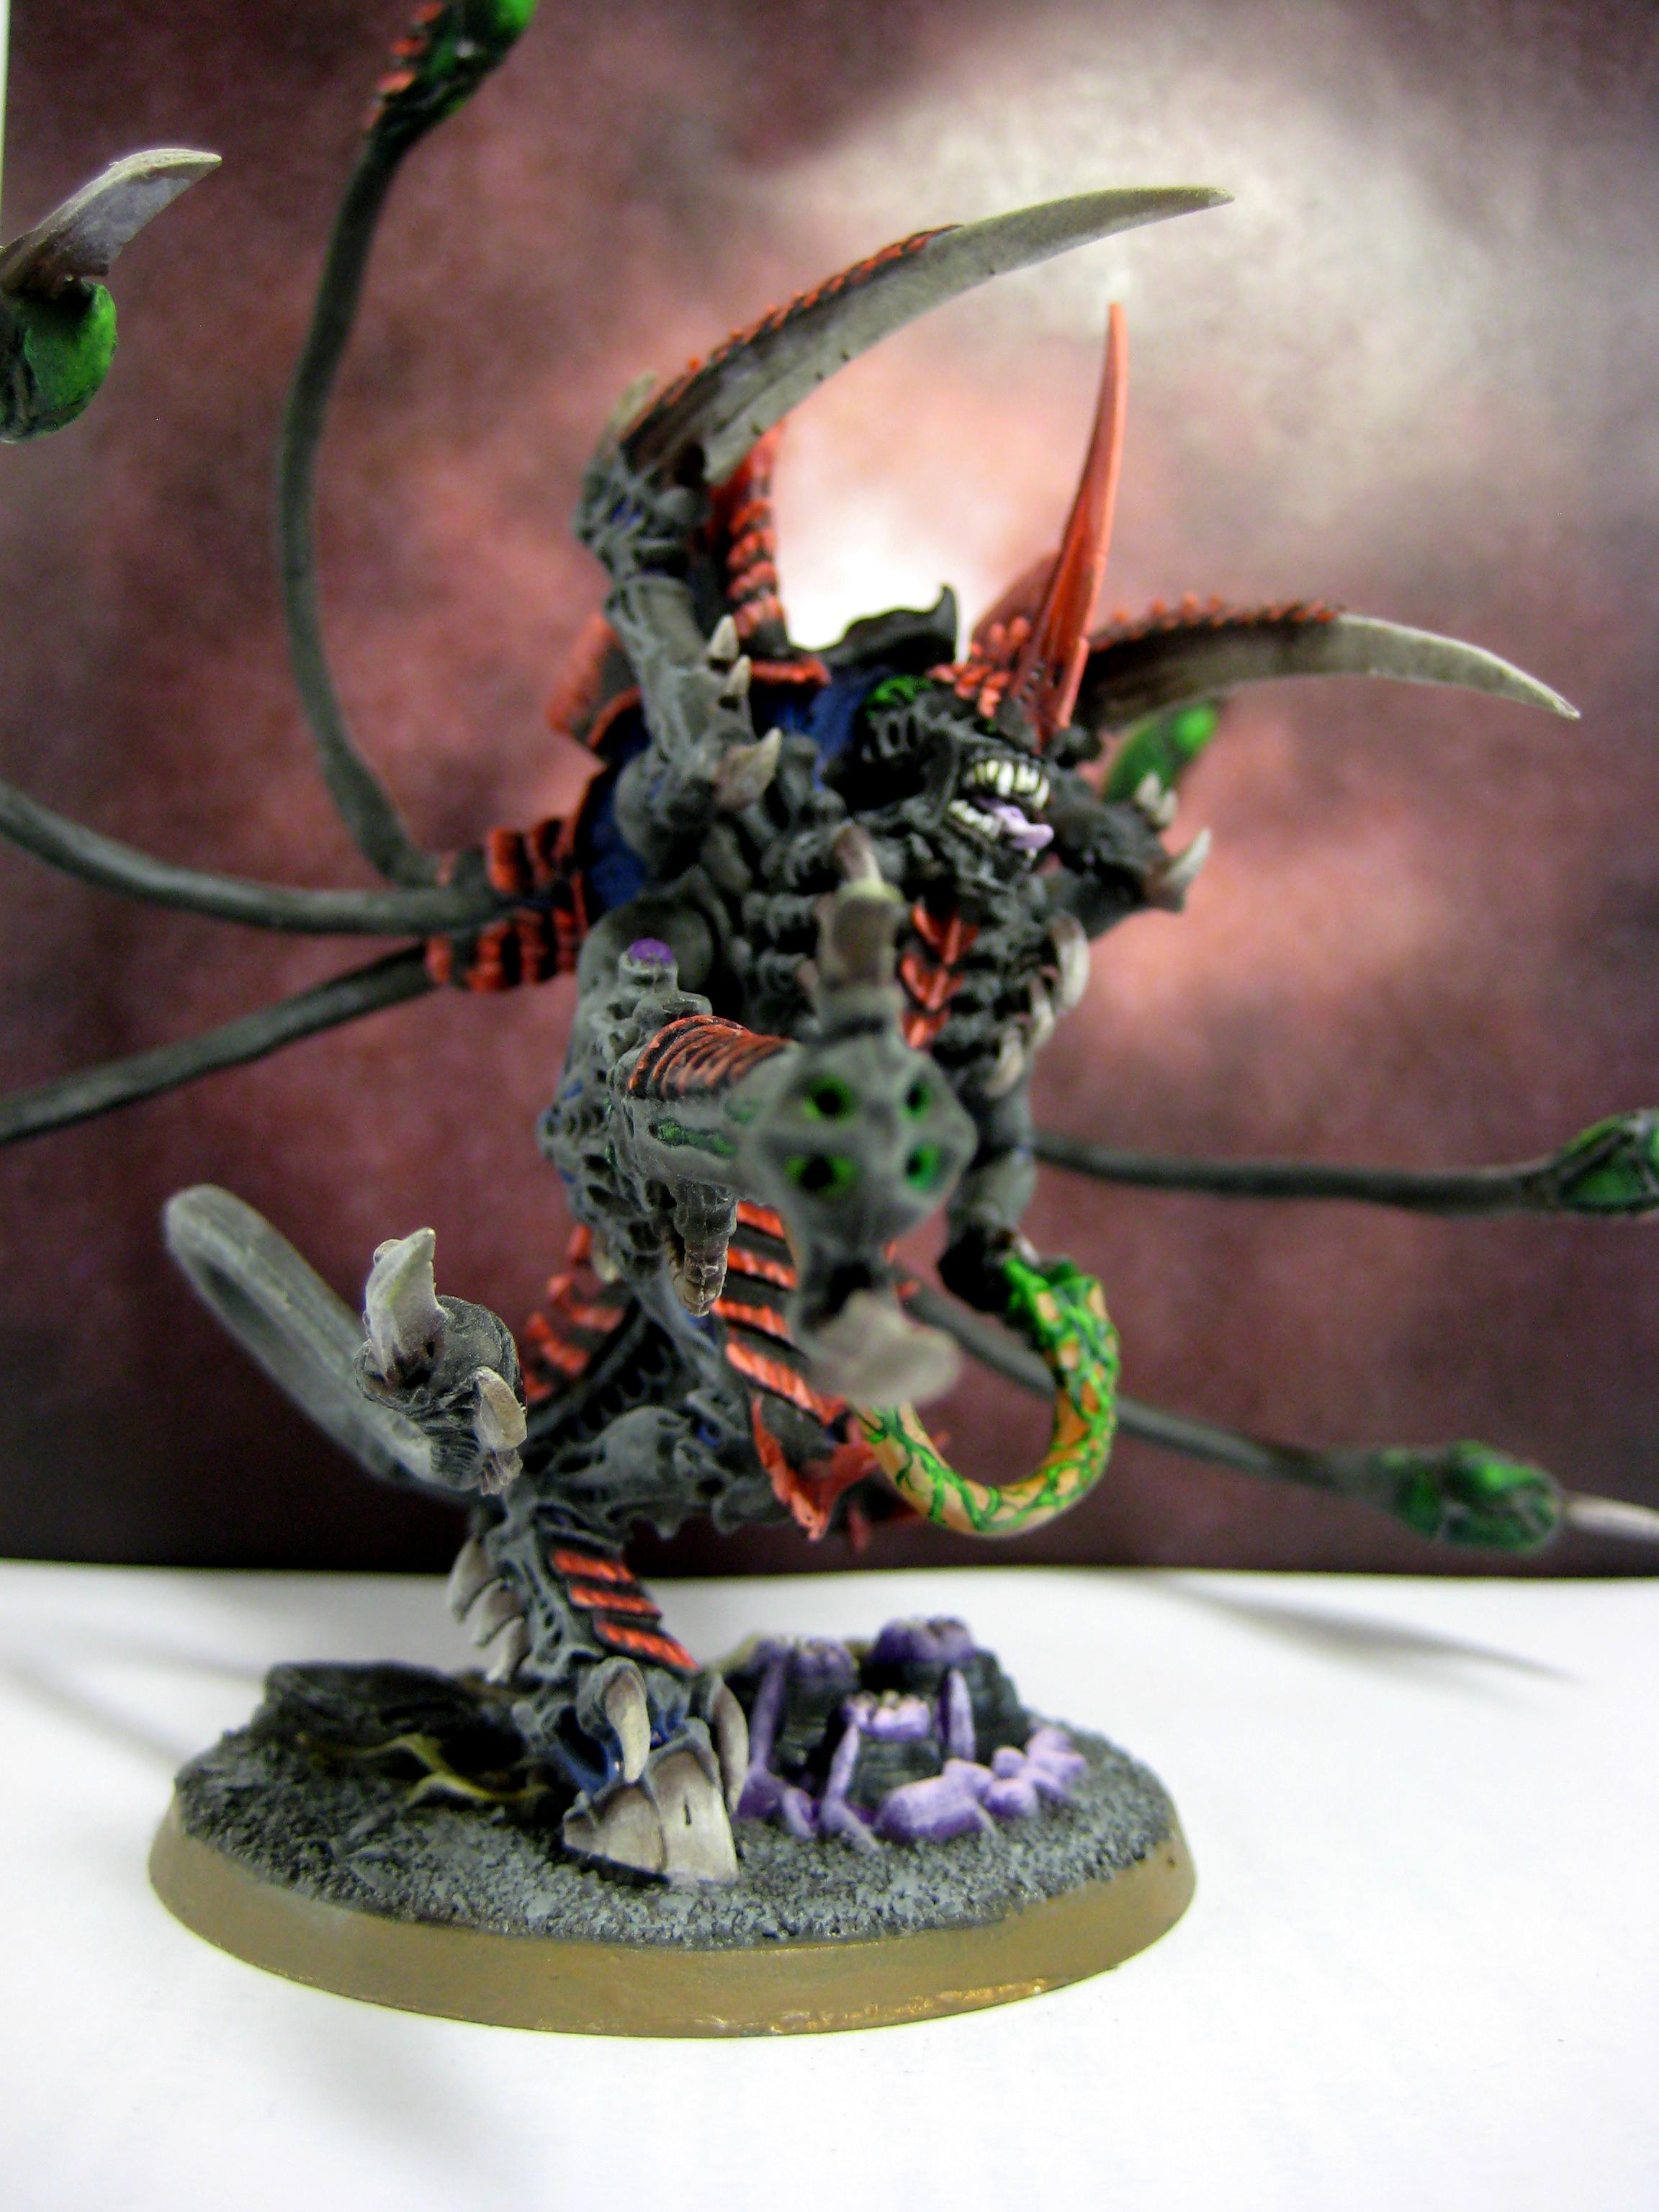 Coversion, Hive Tyrant, Tyranids, Warhammer 40,000